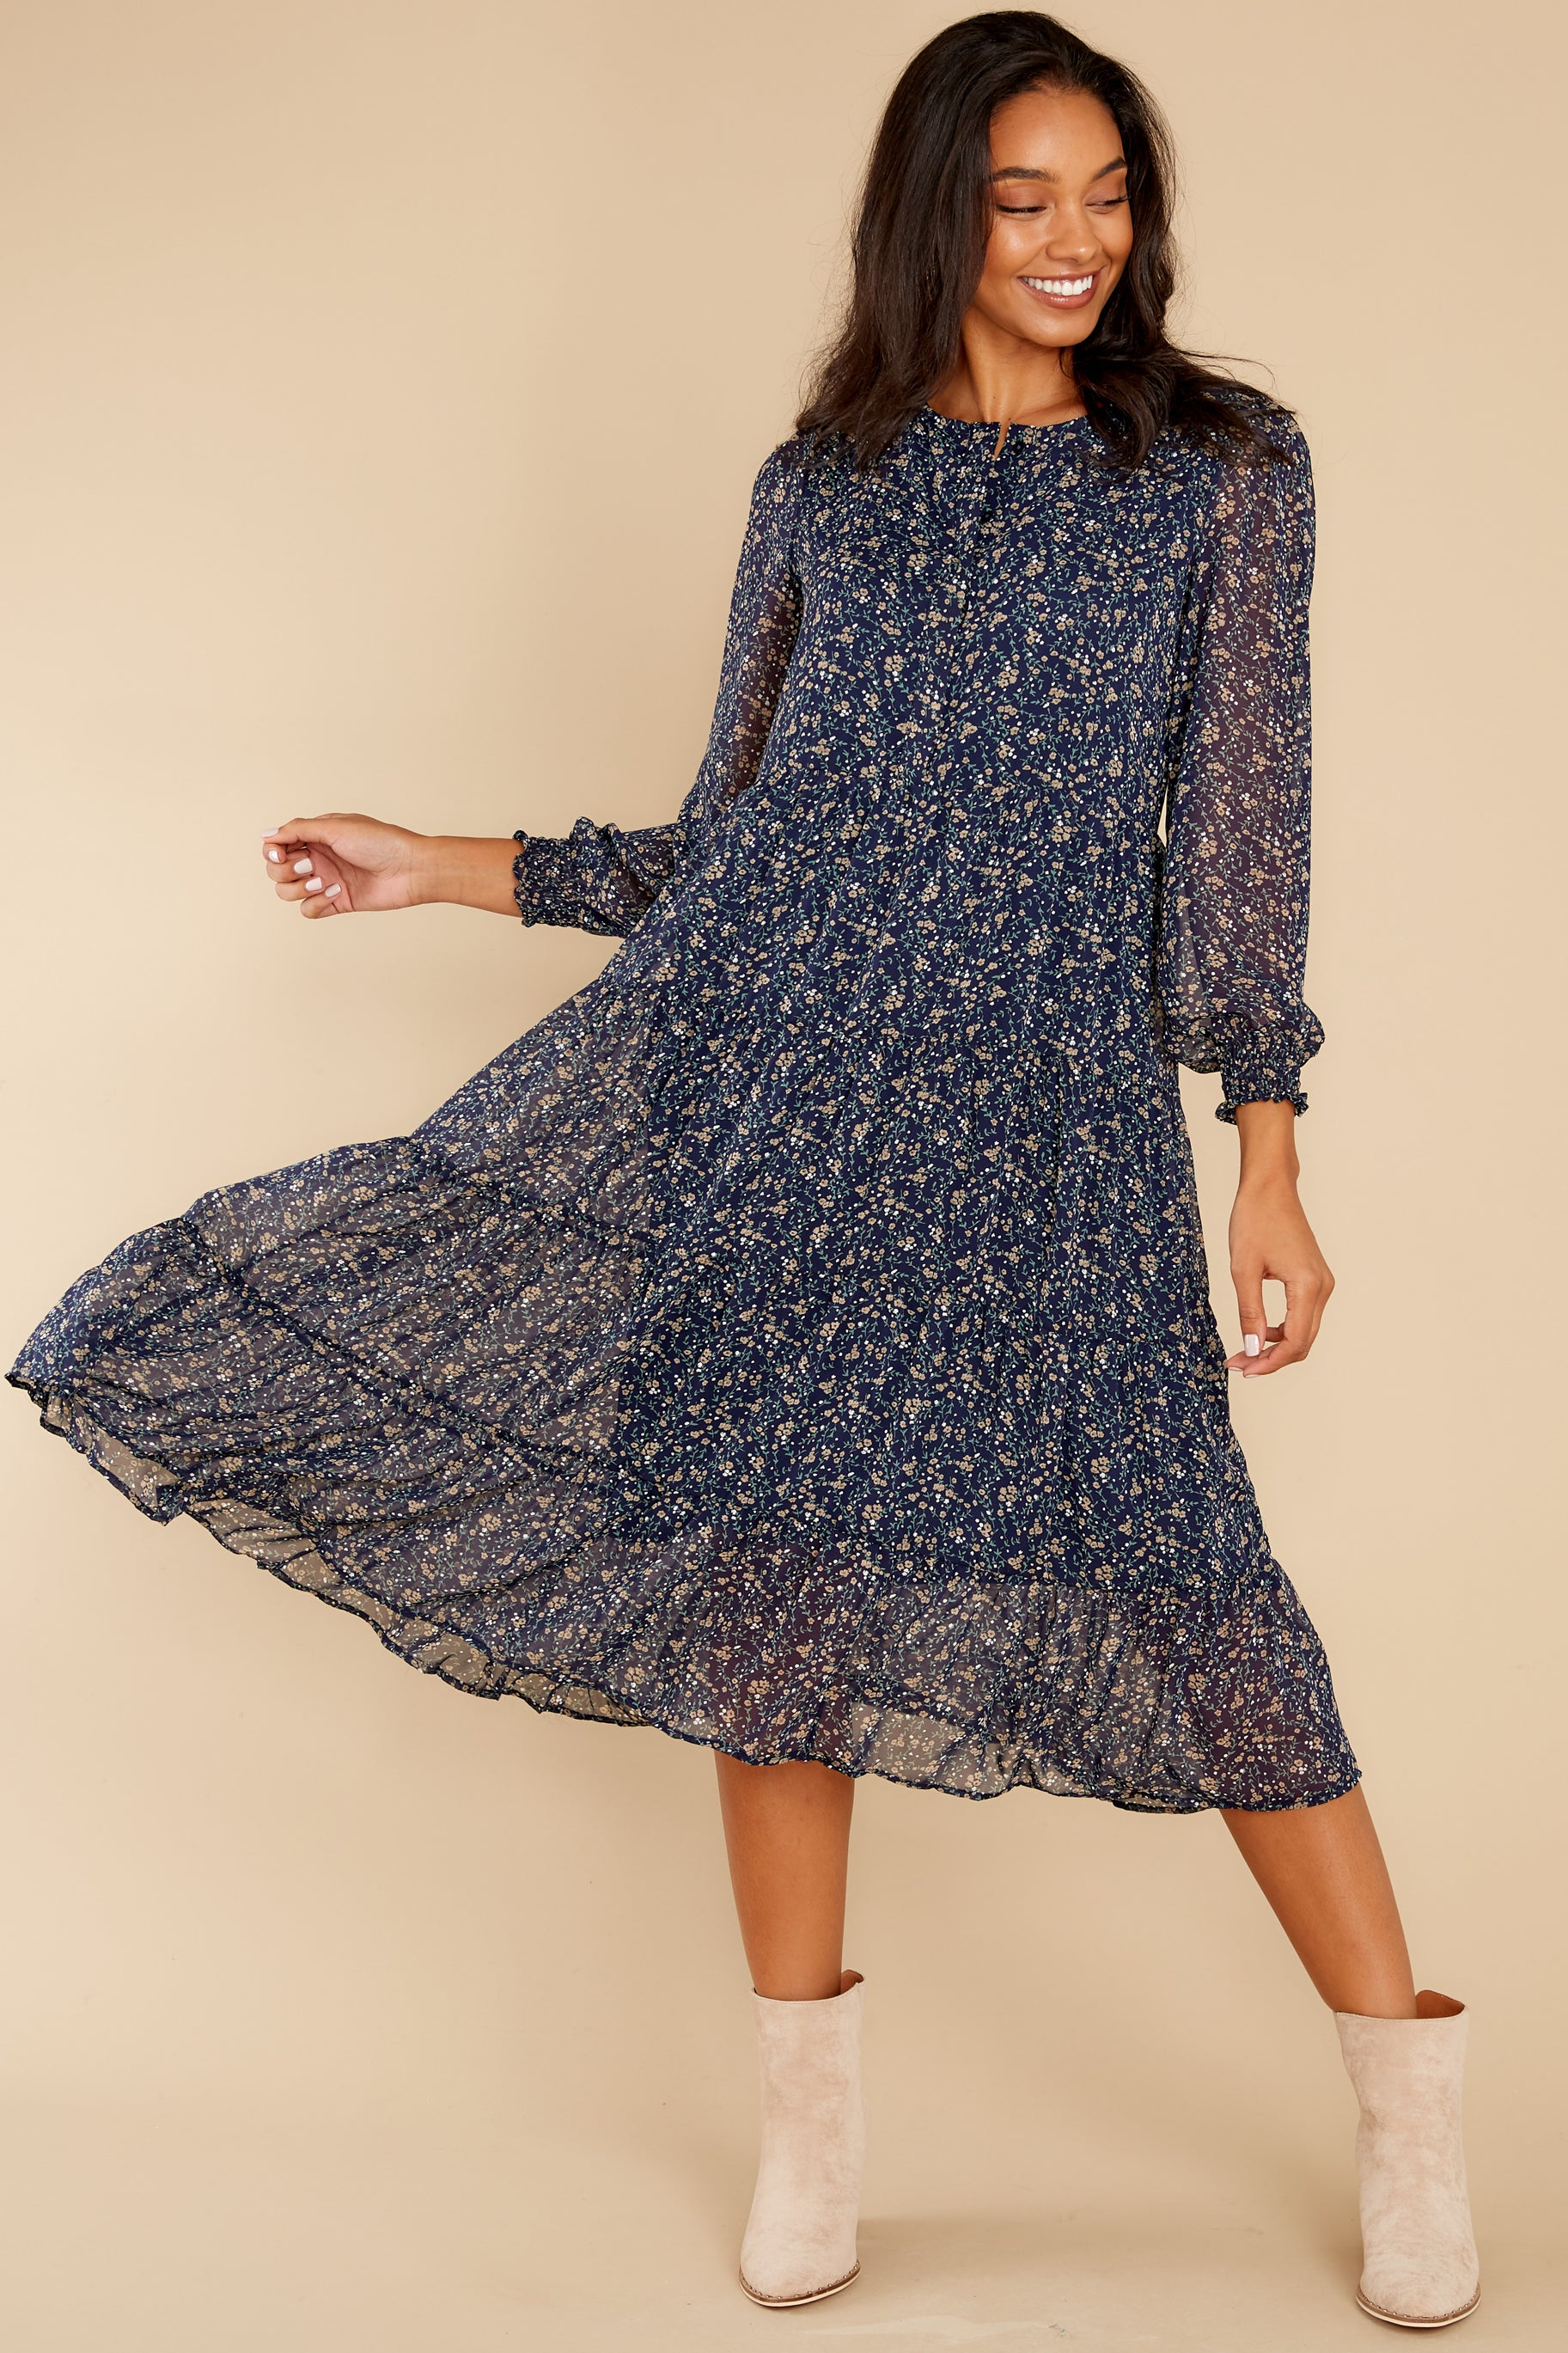 5 So It Goes Navy Floral Print Midi Dress at reddress.com